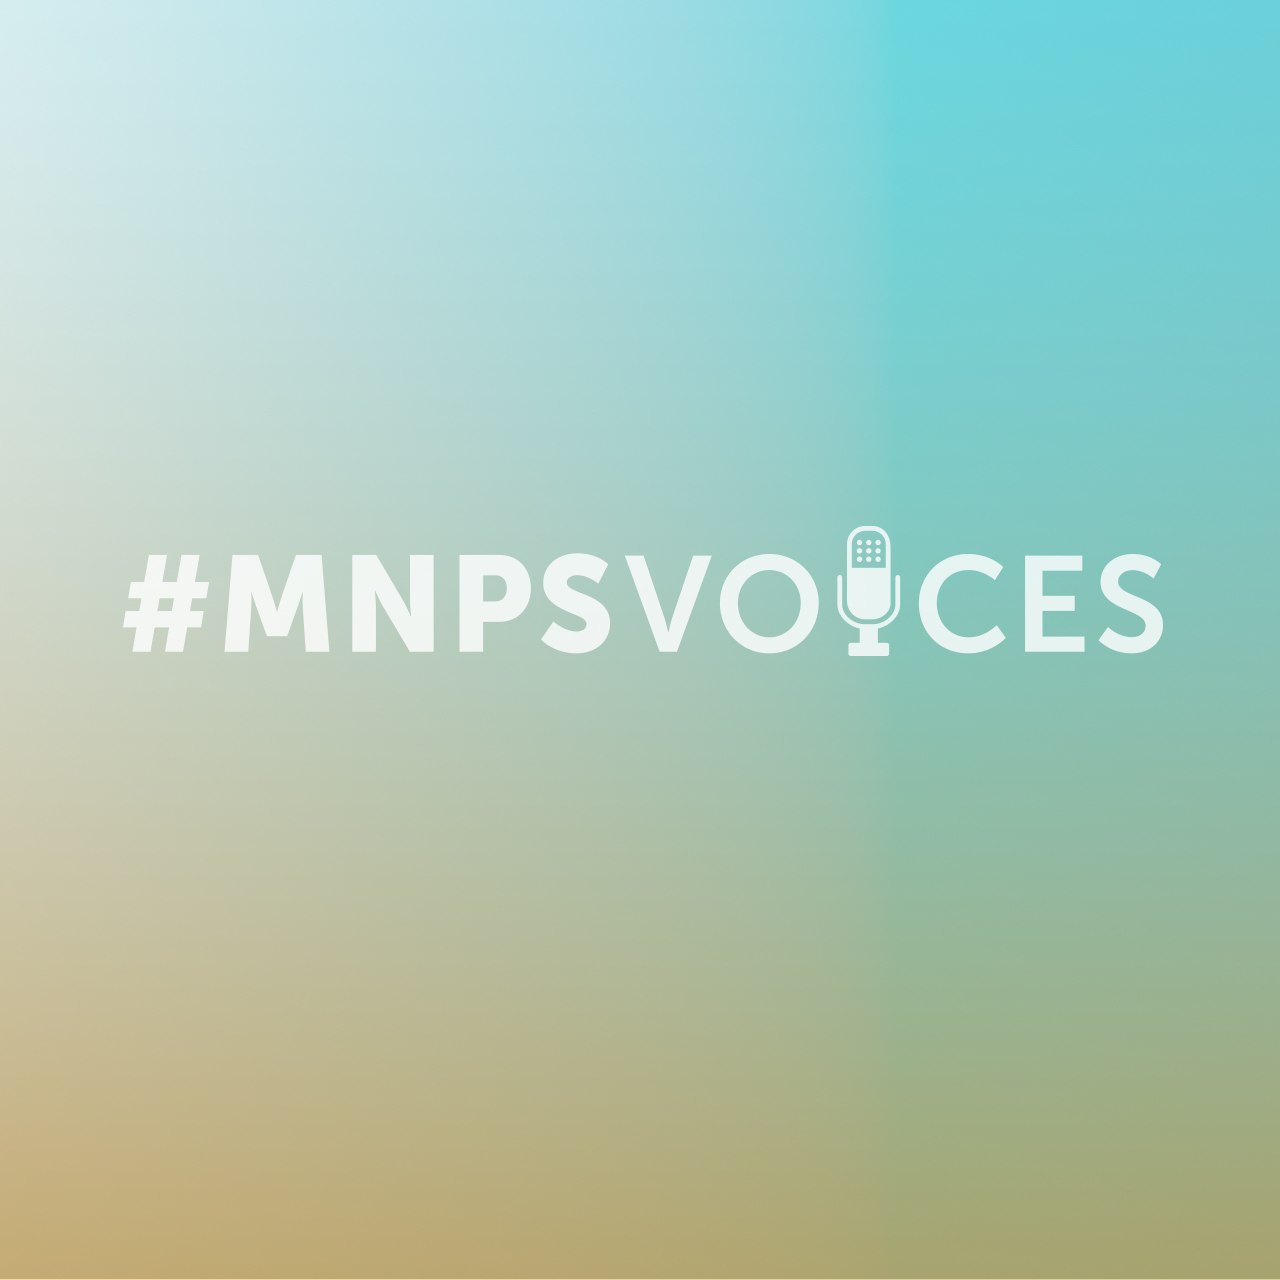 MNPSVoices_Template (Gradient_Background)